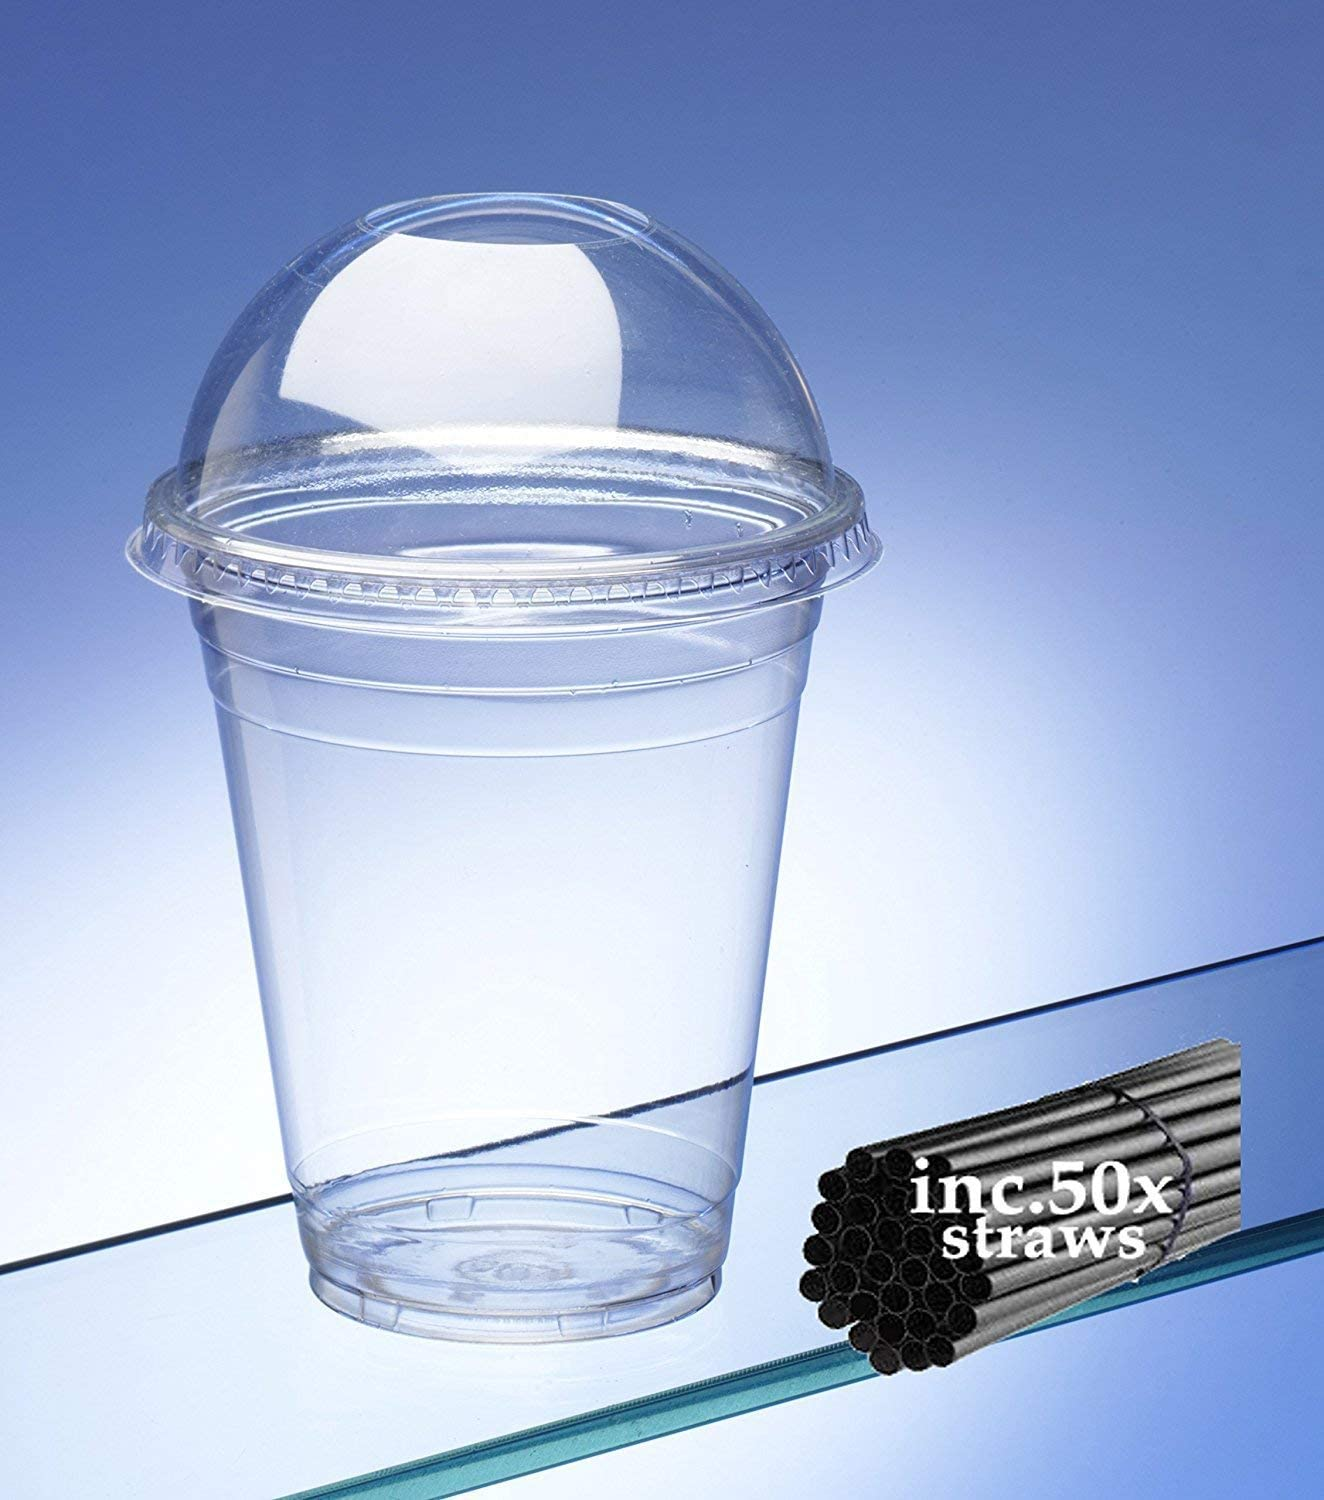 Capacity 500ml//17.5oz Recyclable Smoothie Cups with Dome Lids and Com-postable Straws Pack of 50.